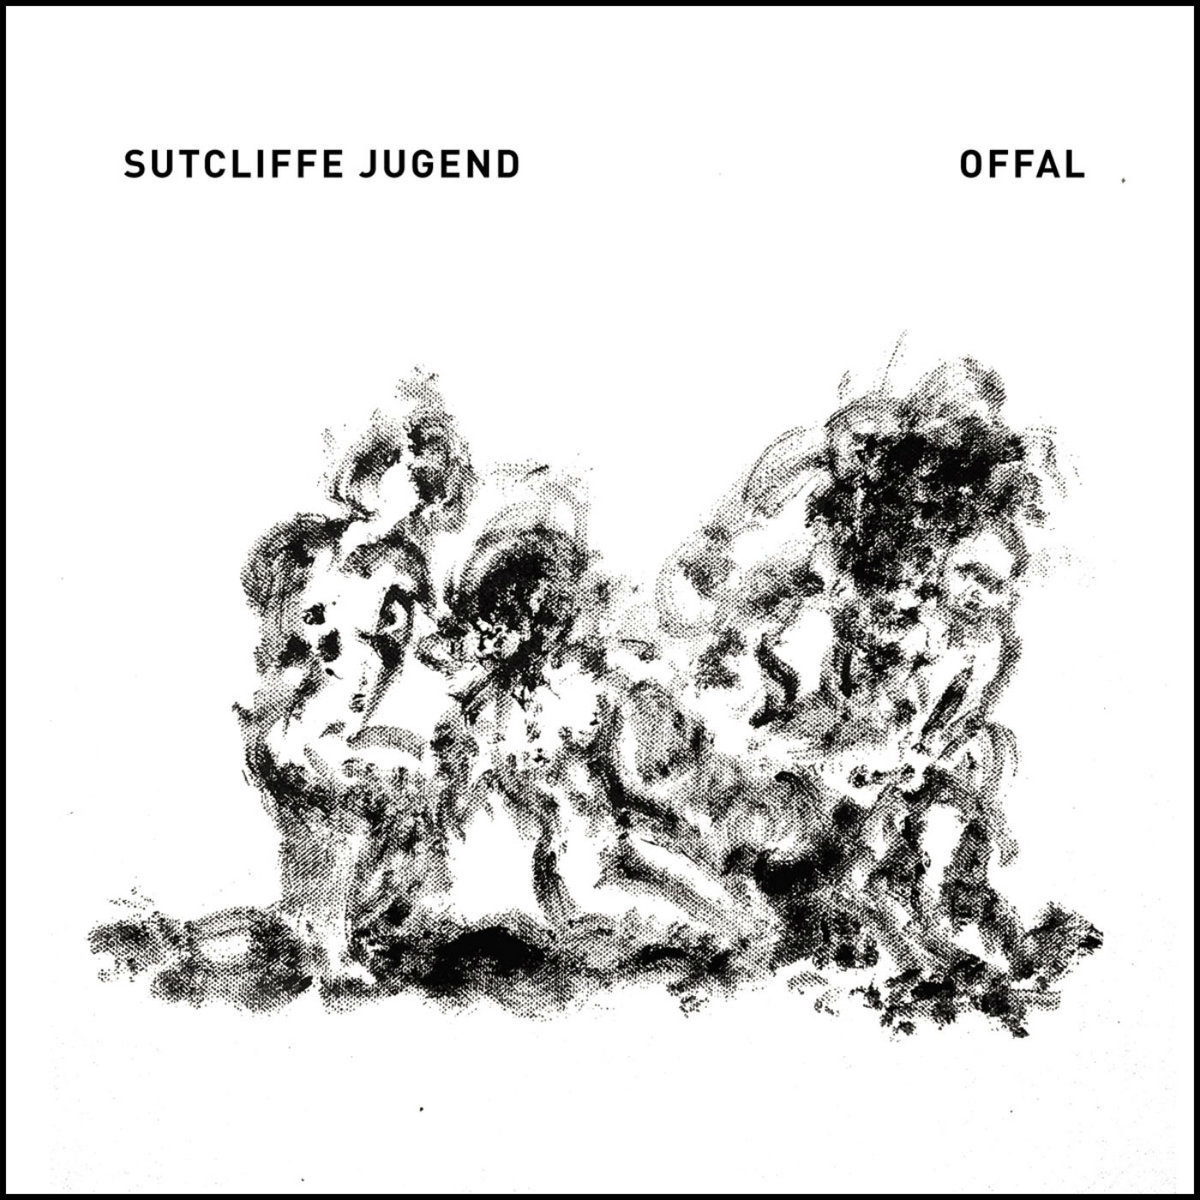 SUTCLIFFE JUGEND - Offal CD - 画像1